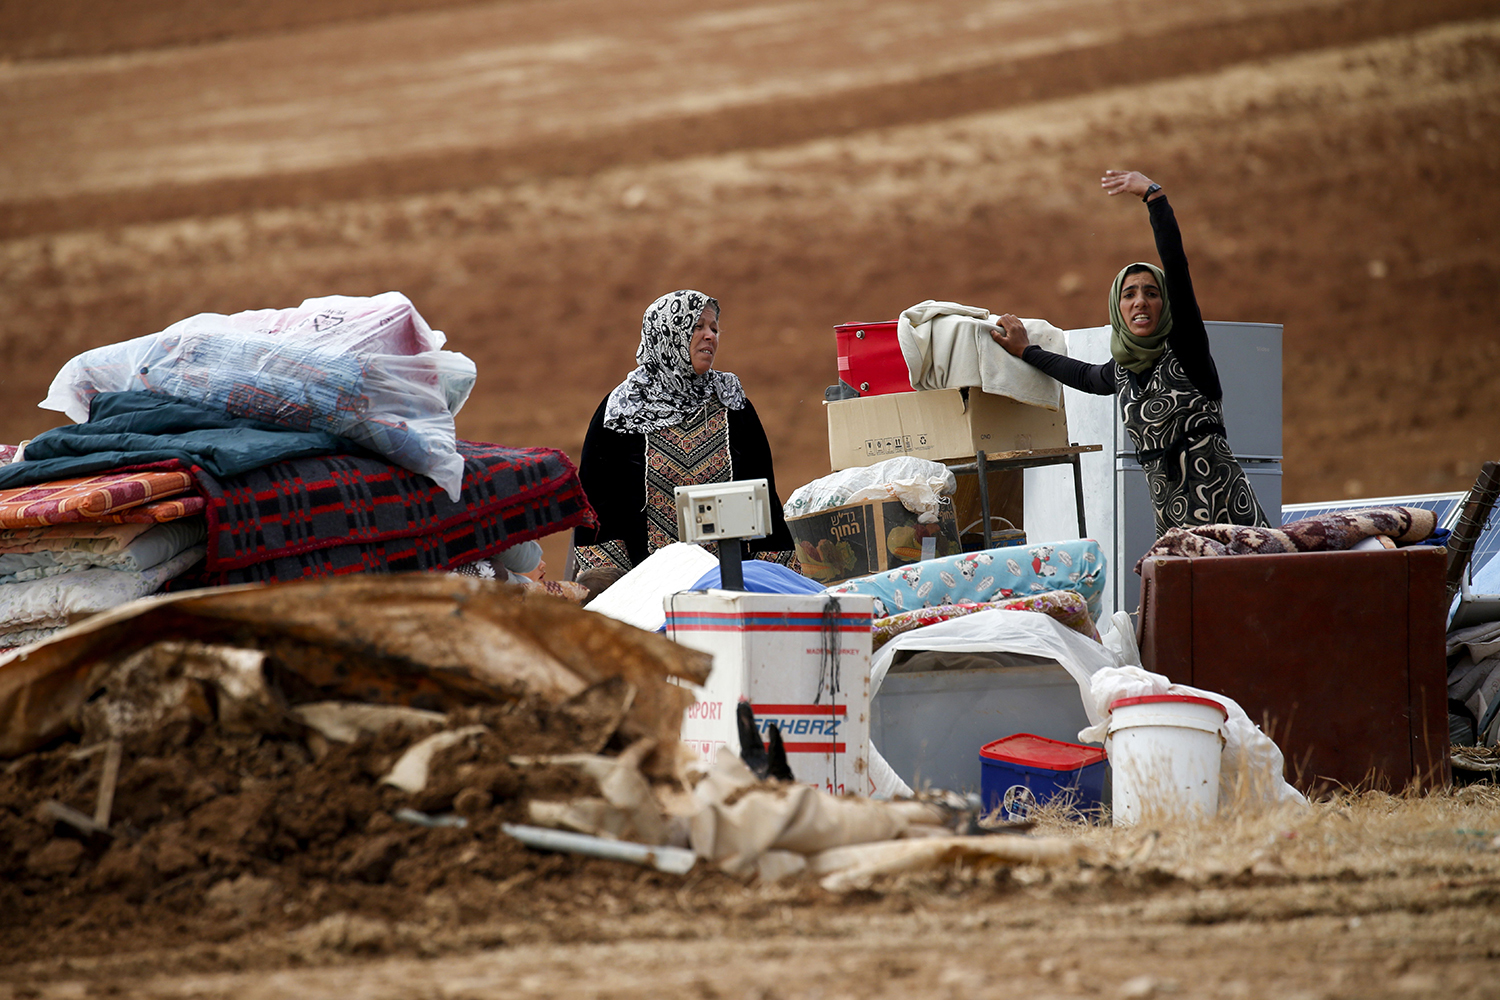 Palestinian Bedouins stand next to their belongings after Israeli soldiers demolished their tents in an area east of the village of Tubas, in the occupied West Bank, on Nov. 3. JAAFAR ASHTIYEH/AFP via Getty Images